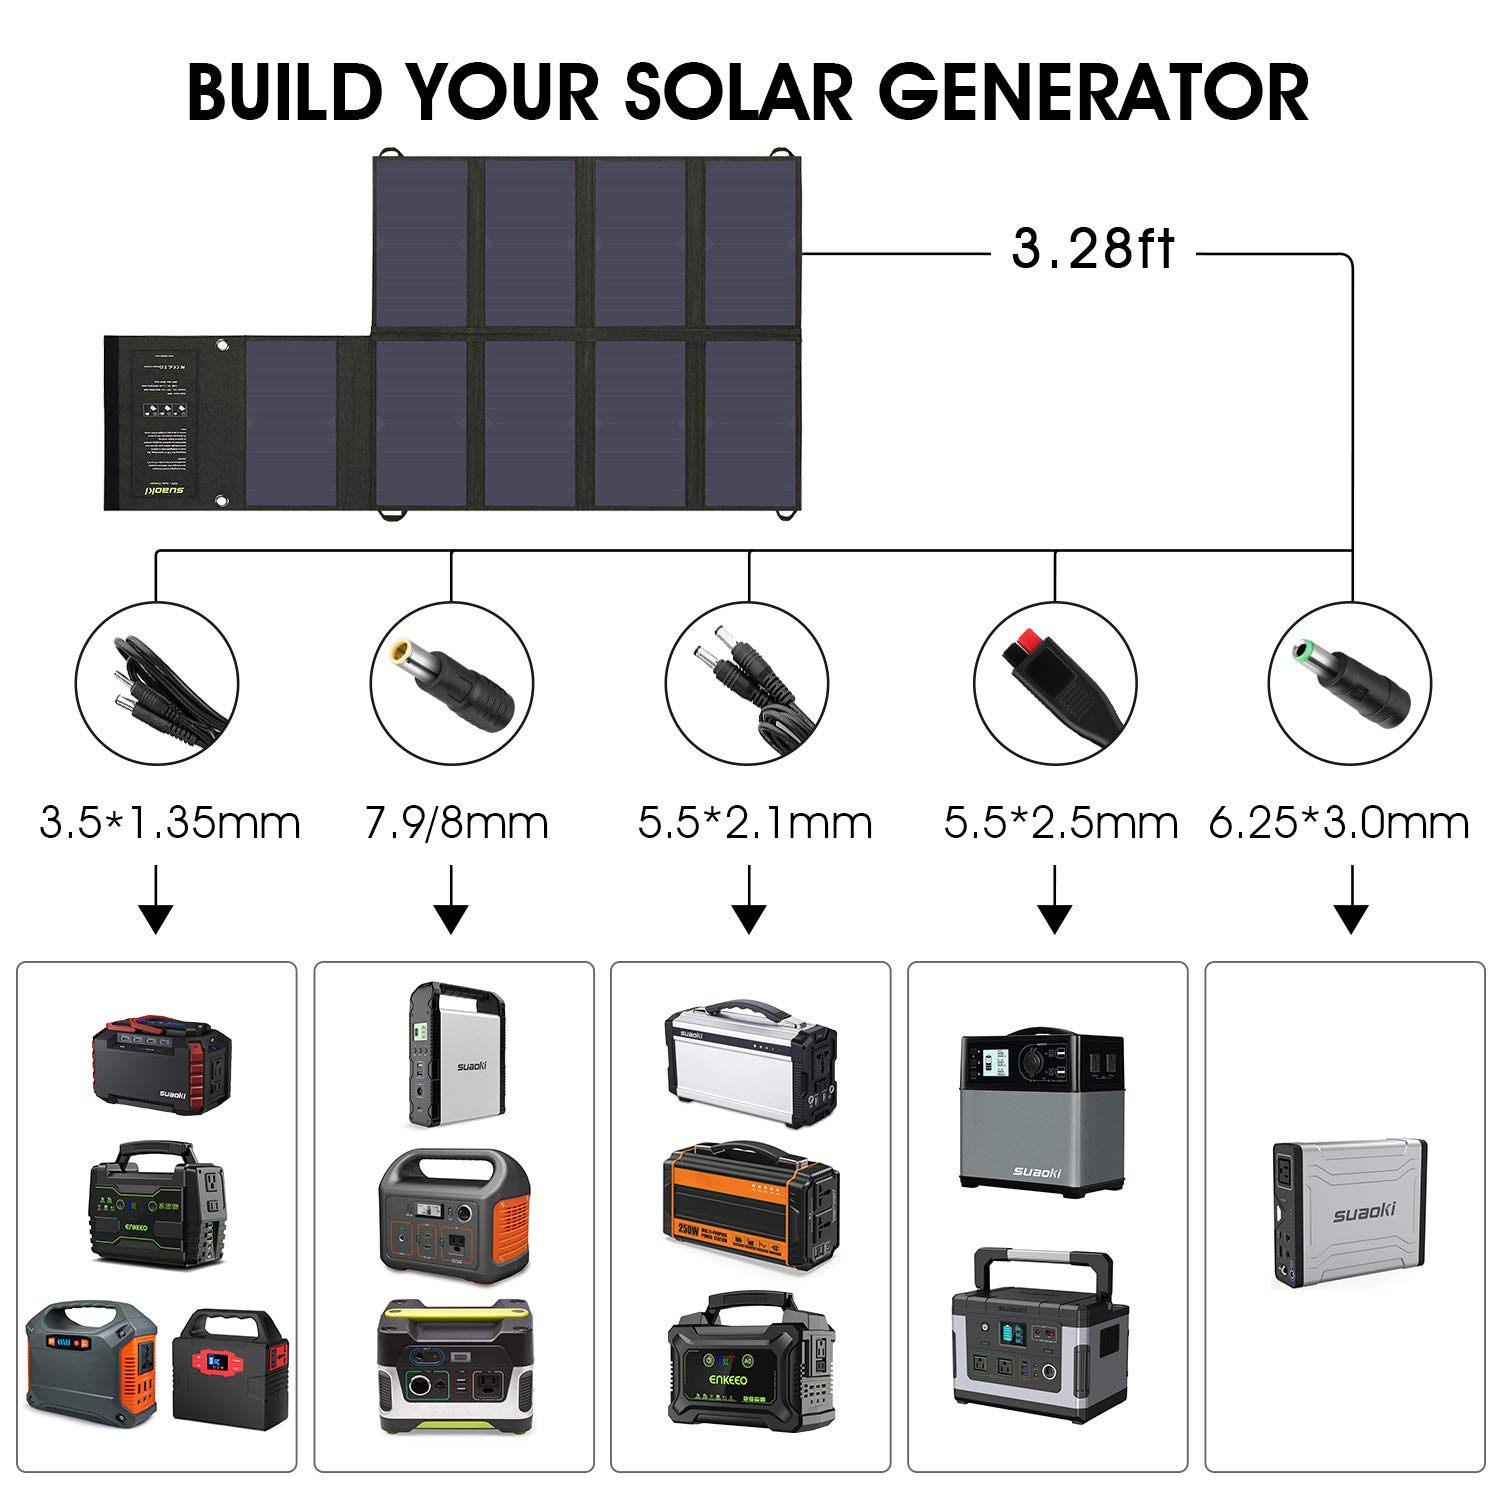 SUAOKI Solar Charger 60W Portable Solar Panel Foldable for SUAOKI Enkeeo Goal Zero Yeti Webetop Paxcess ROCKPALS Power Station Generator and Laptop Tablet GPS iPhone iPad Camera